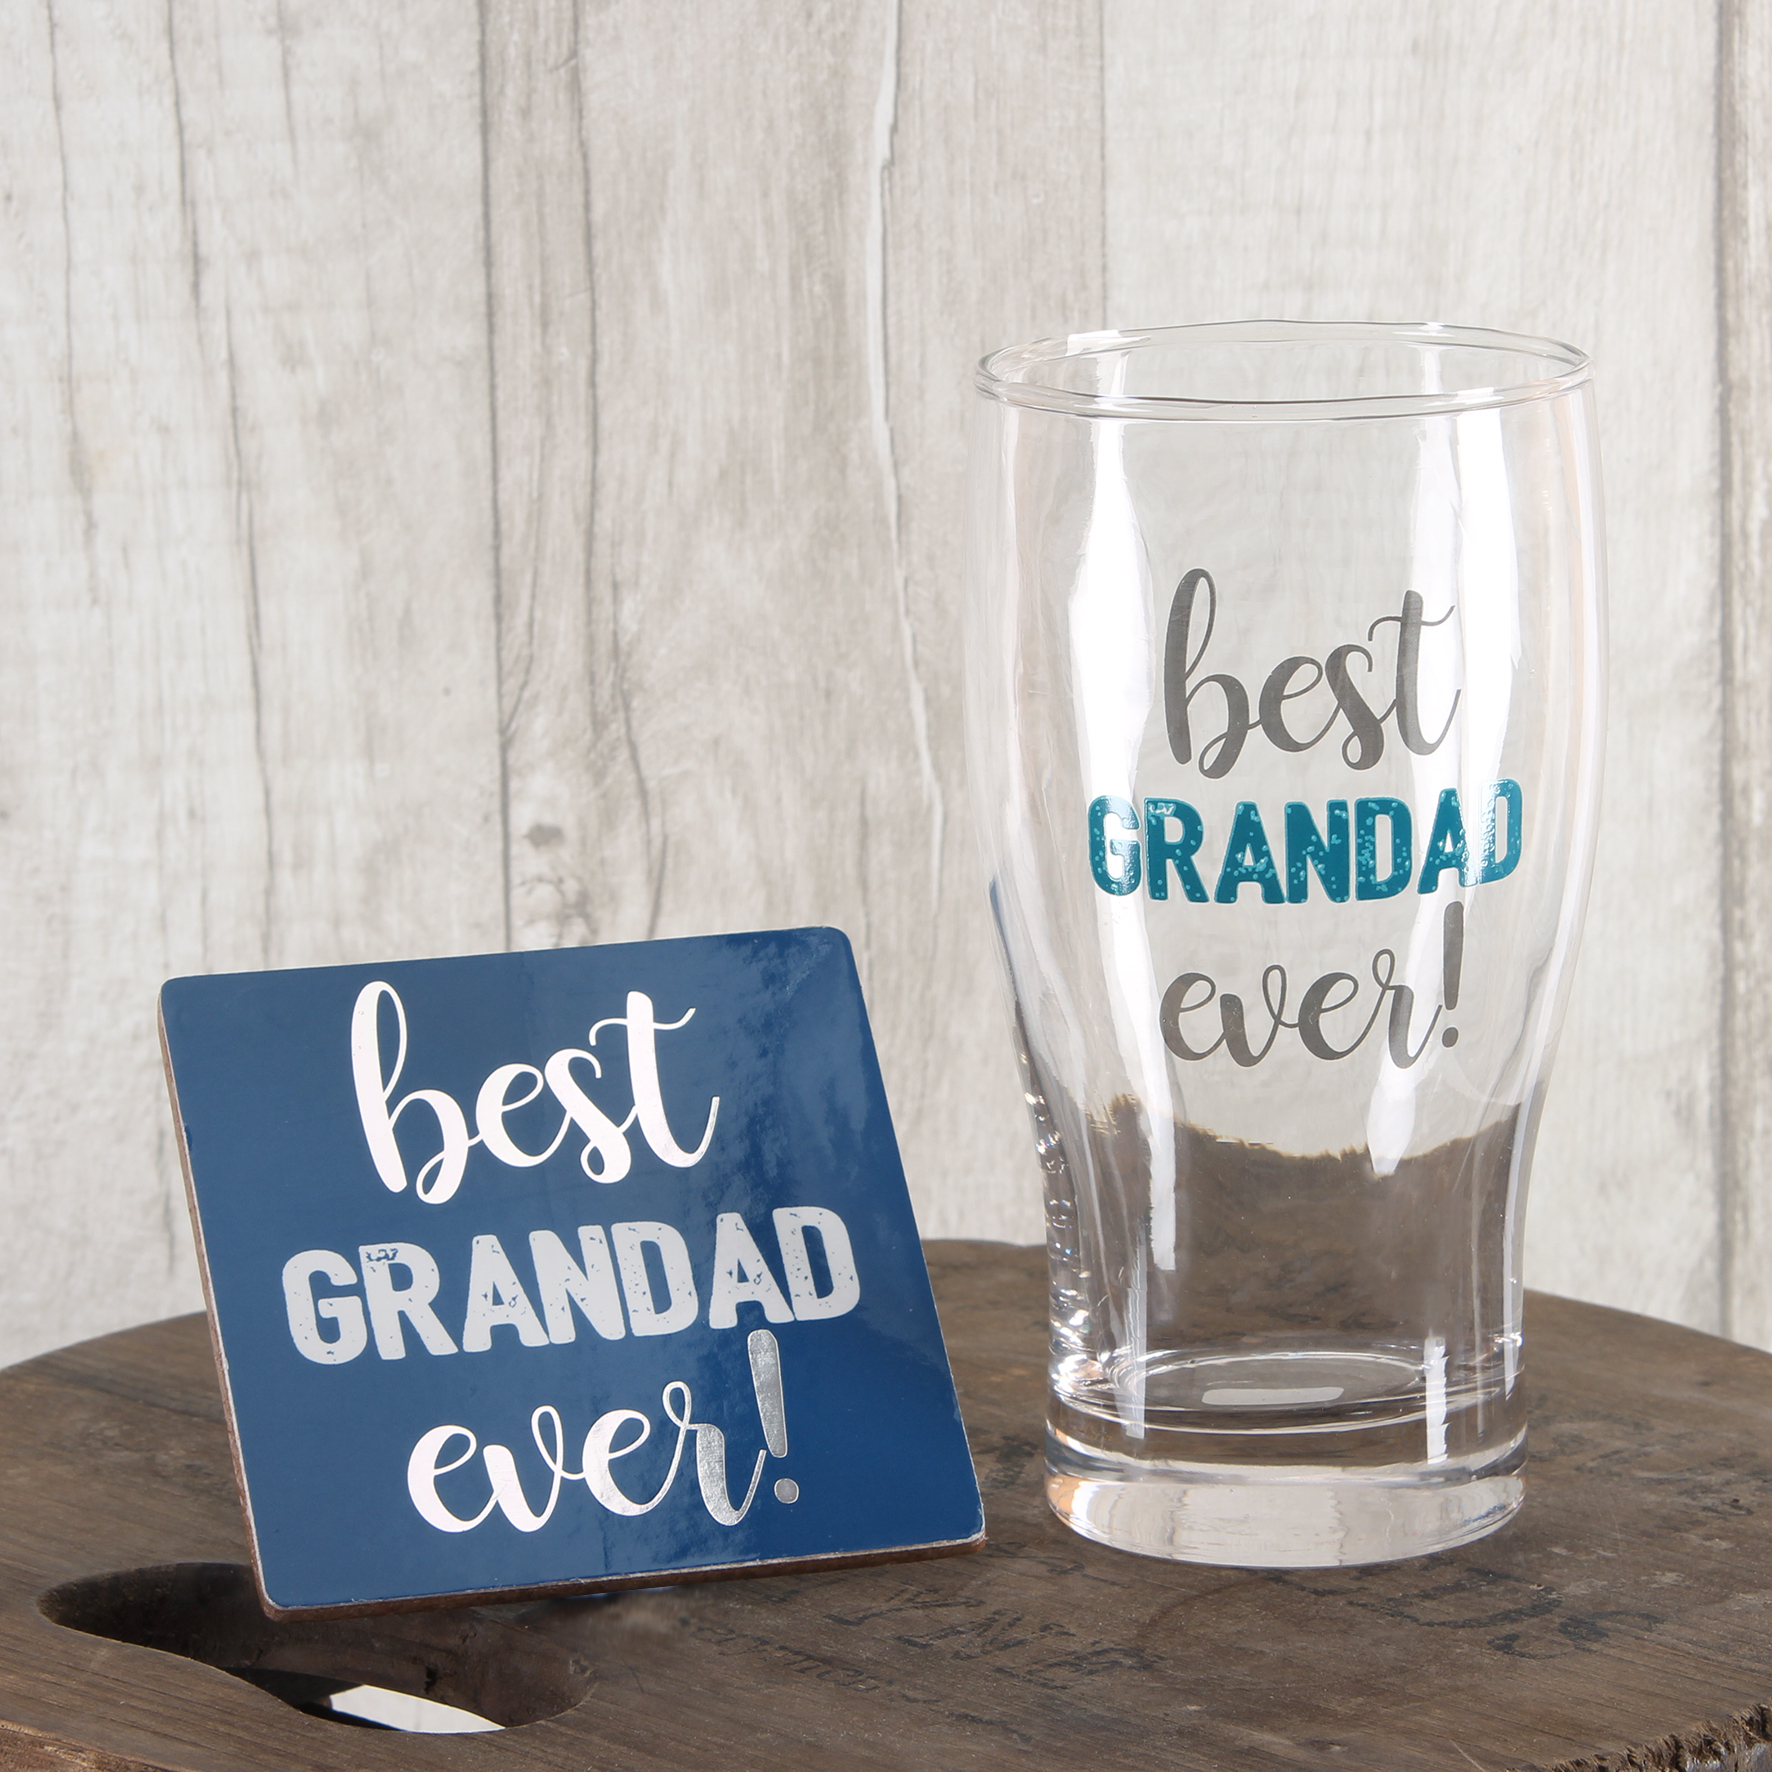 best grandad ever pint glass coaster set in gift box gifts